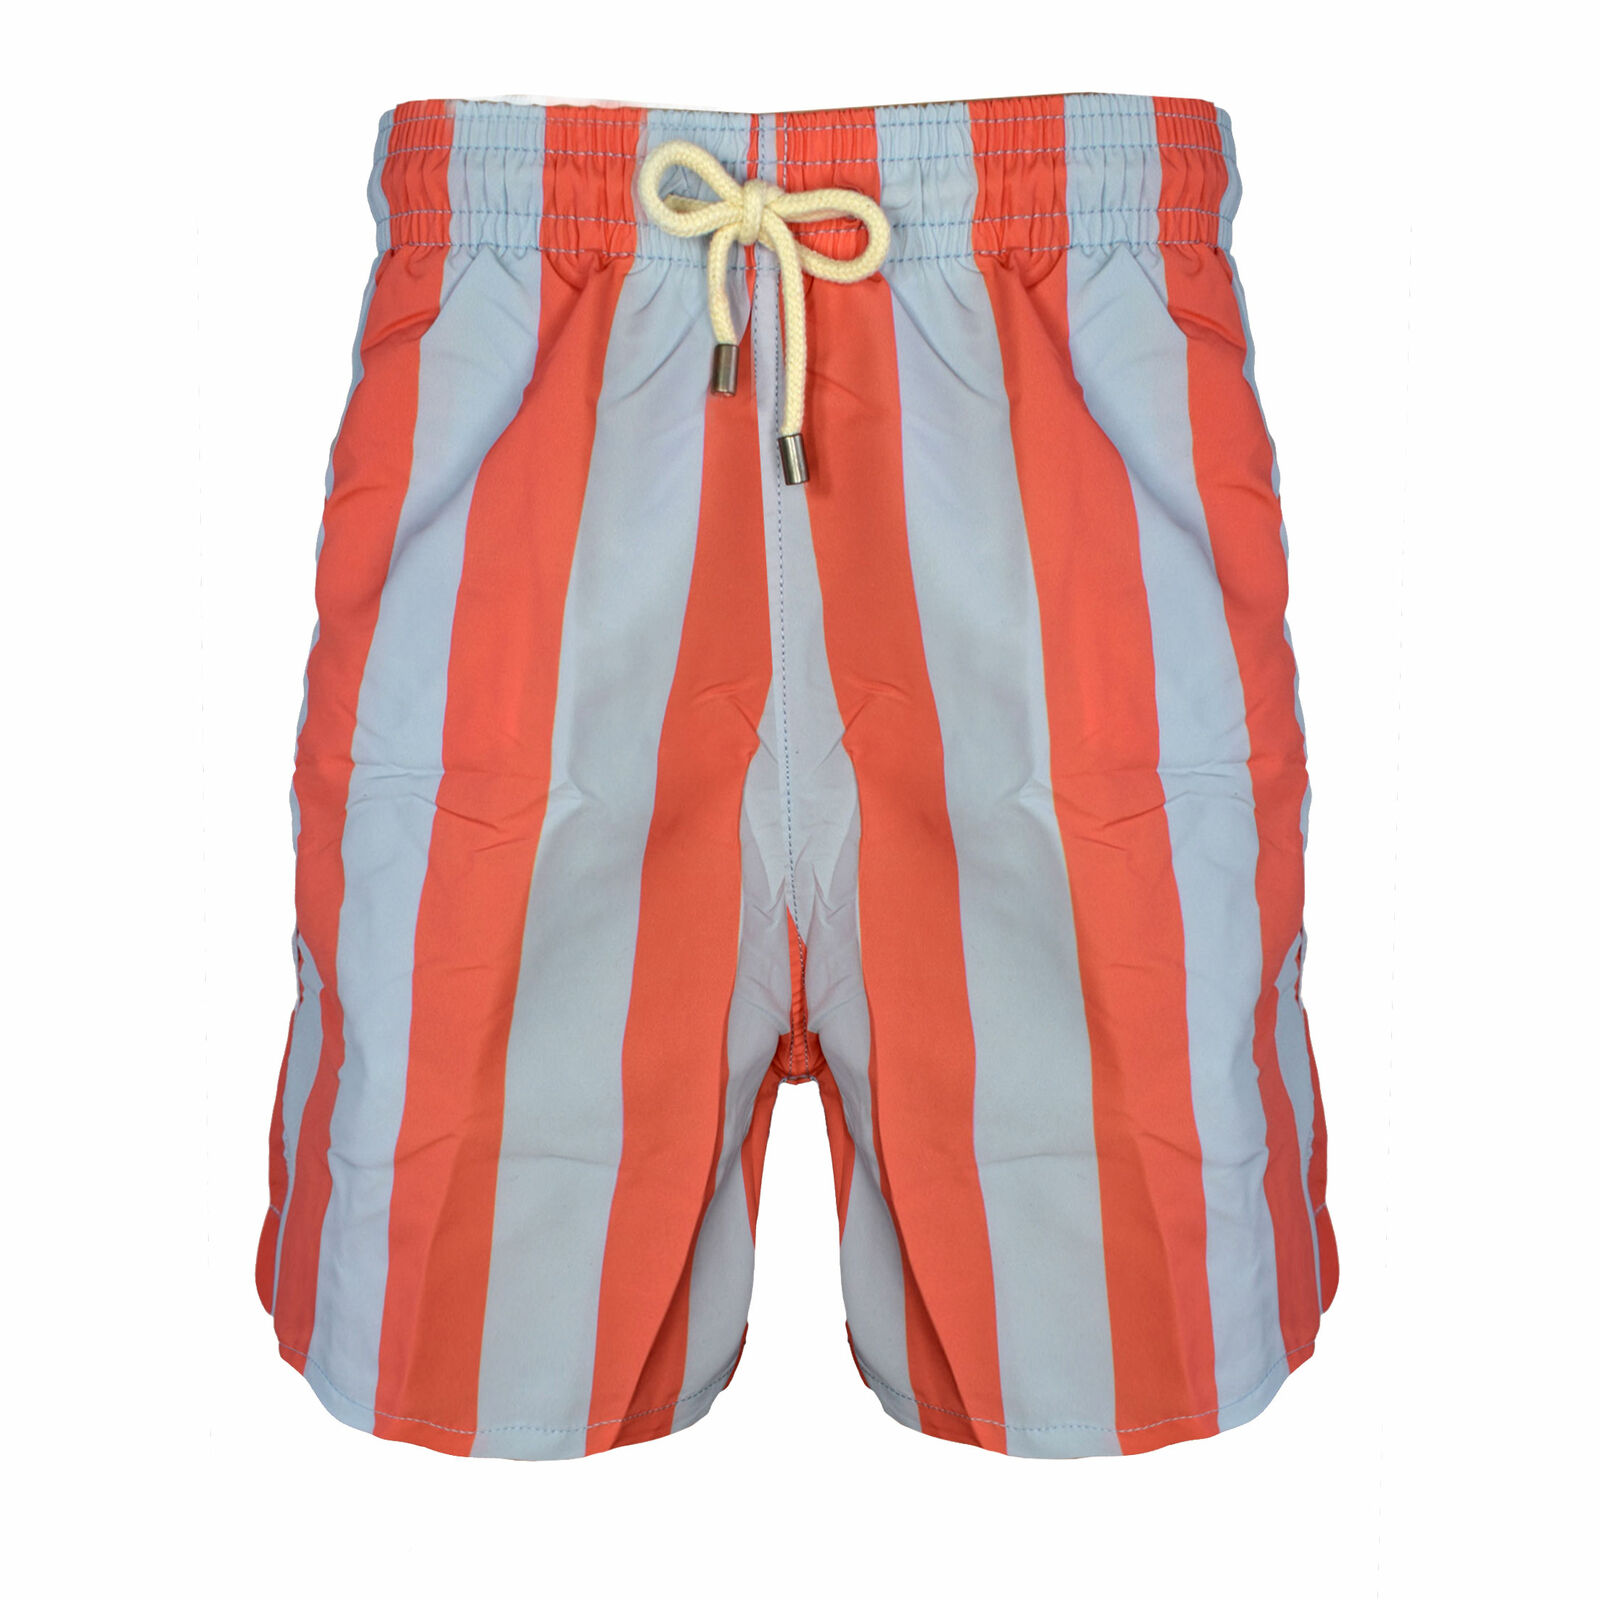 Solid & Striped Men's The Classic Swim Trunks, Coral Ash bluee